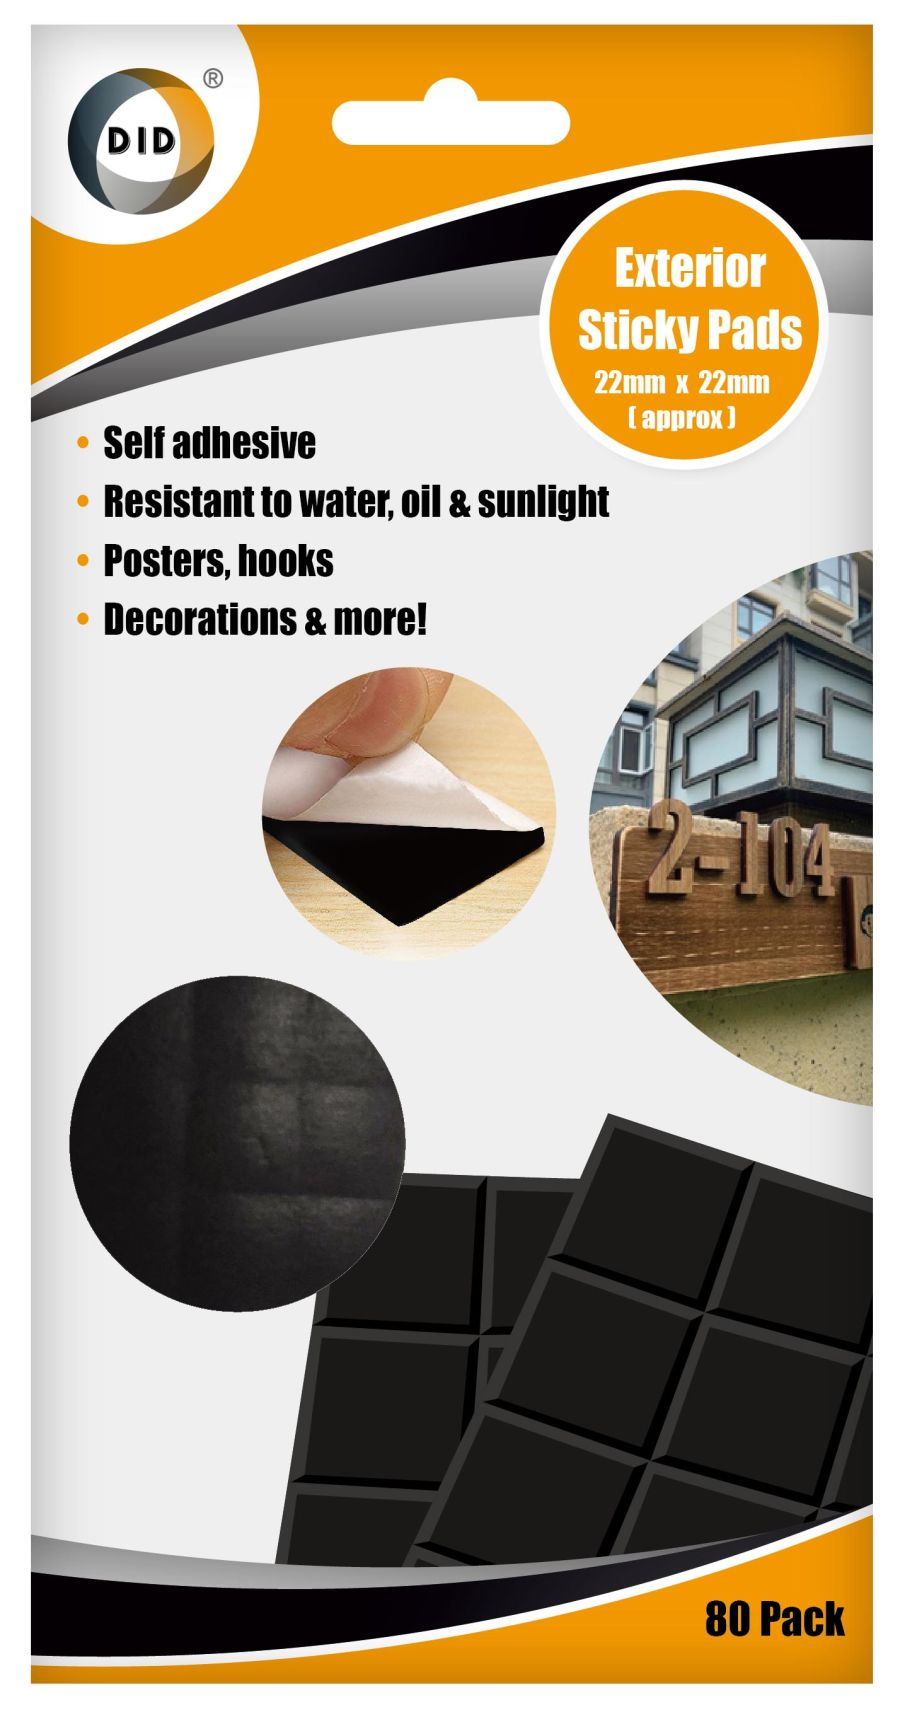 Heavy Duty Double Sided Self Adhesive Exterior Sticky Pads